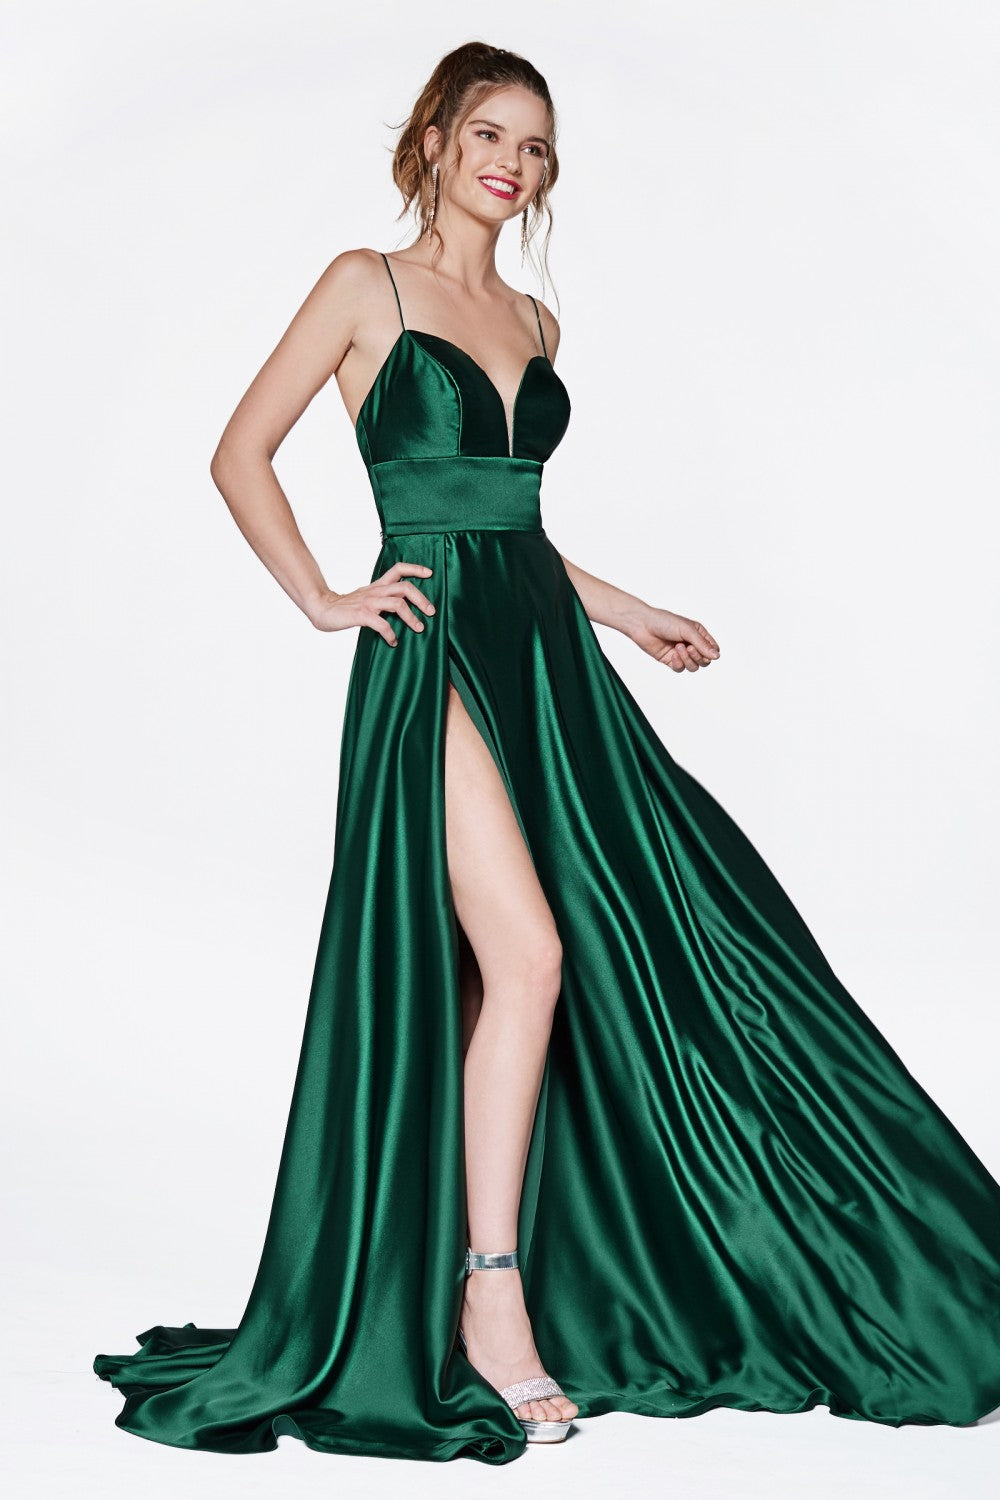 A-Line Gown With Deep Sweetheart Neckline And Leg Slit